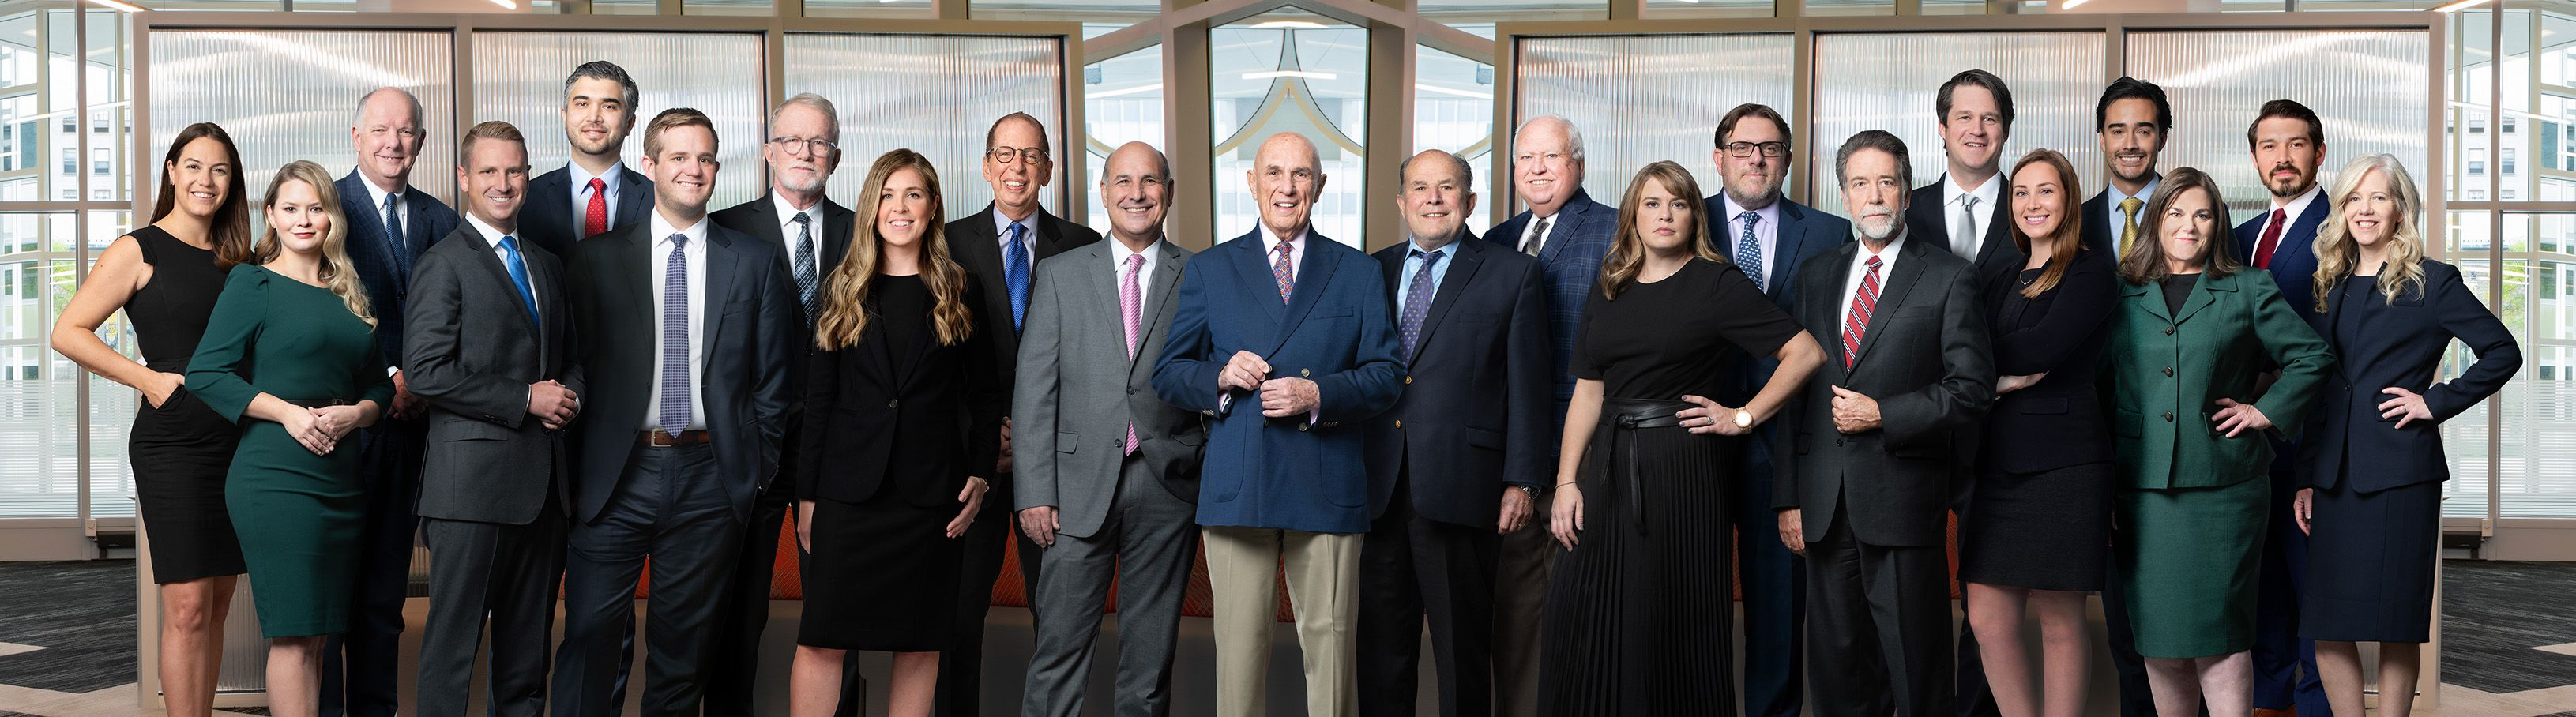 Gimbel, Reilly, Guerin & Brown Attorneys Named in 2022 Best Lawyers in the Midwest Issue